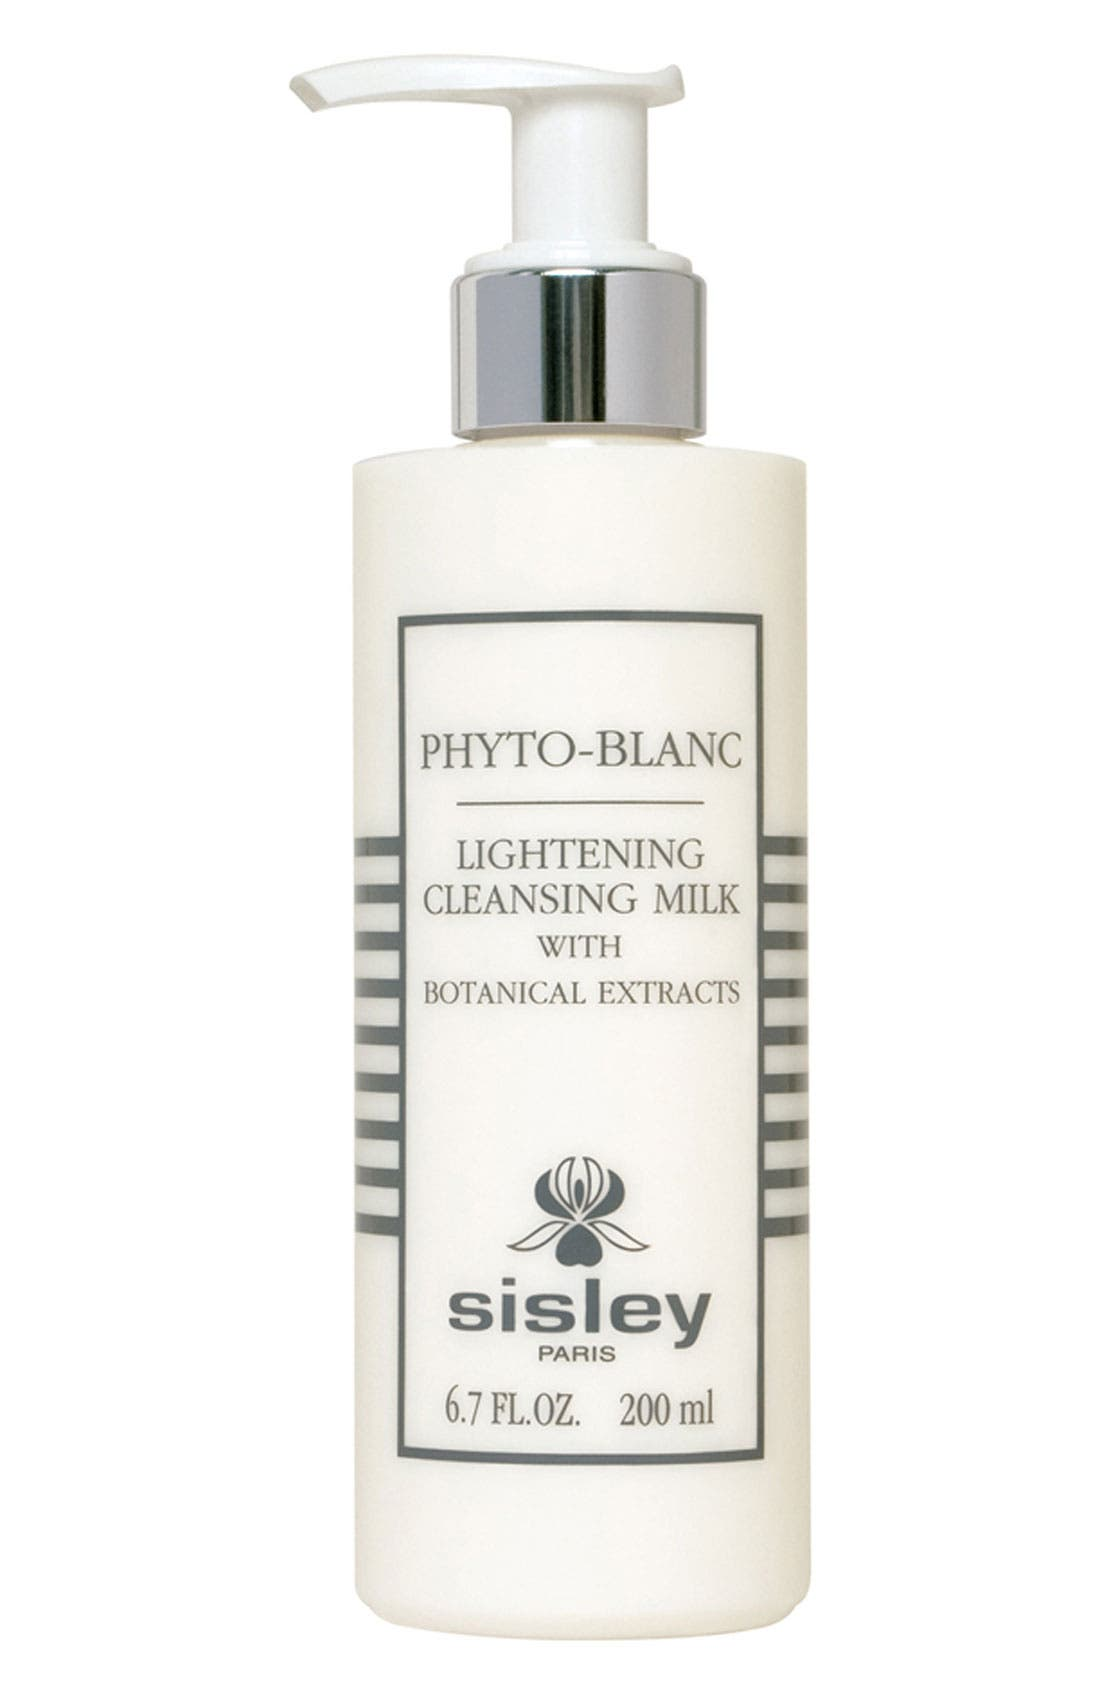 Phyto-Blanc Lightening Cleansing Milk with Botanical Extracts,                         Main,                         color, NONE